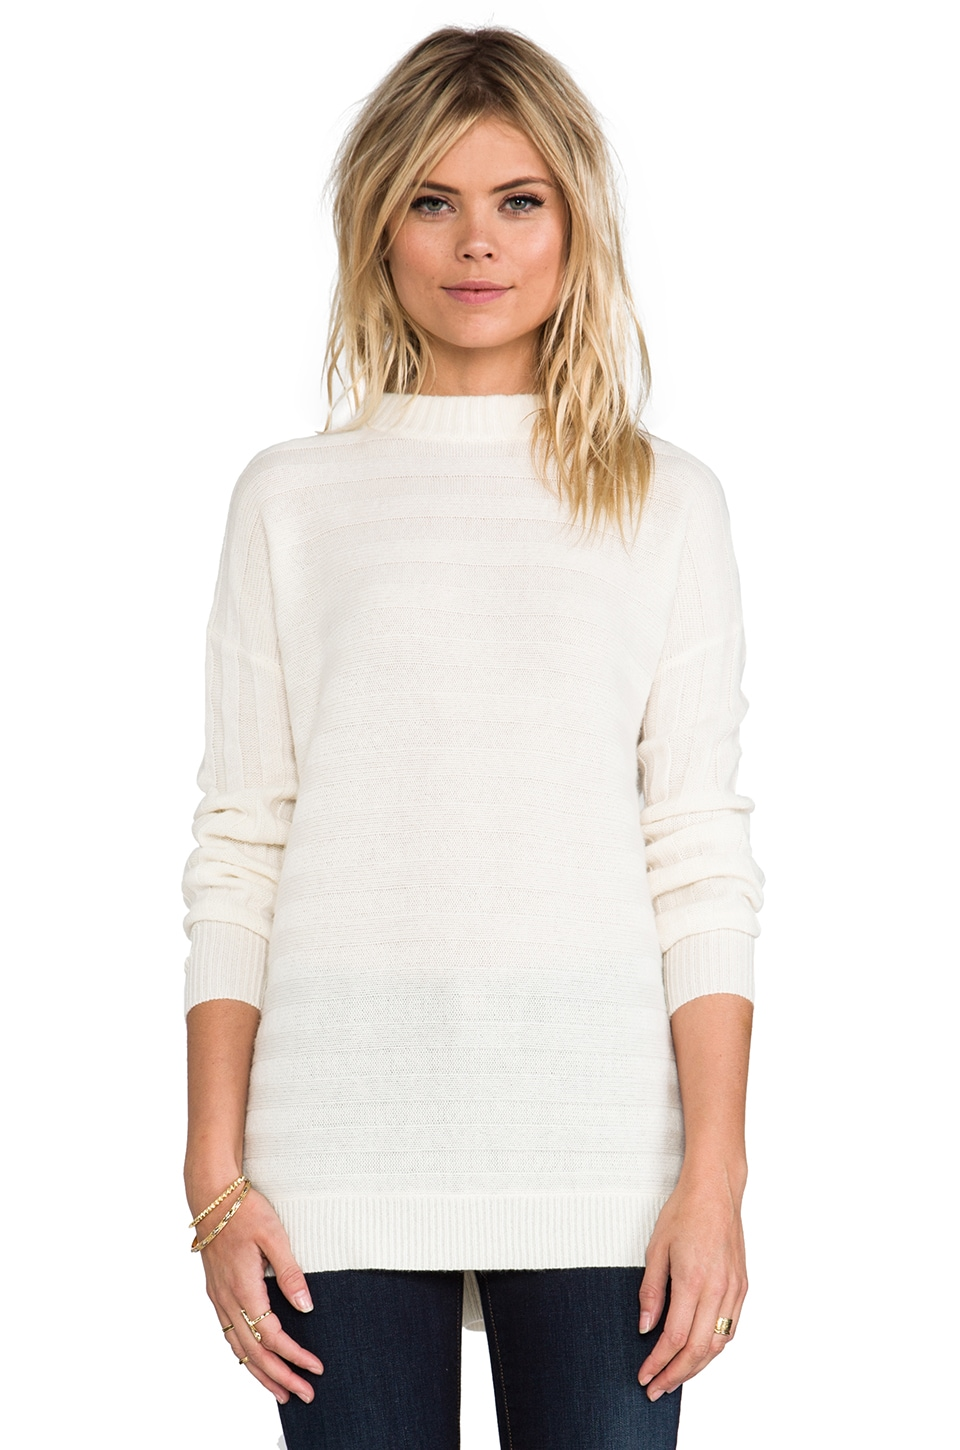 Theory Cashmere Andrista Sweater in Ivory